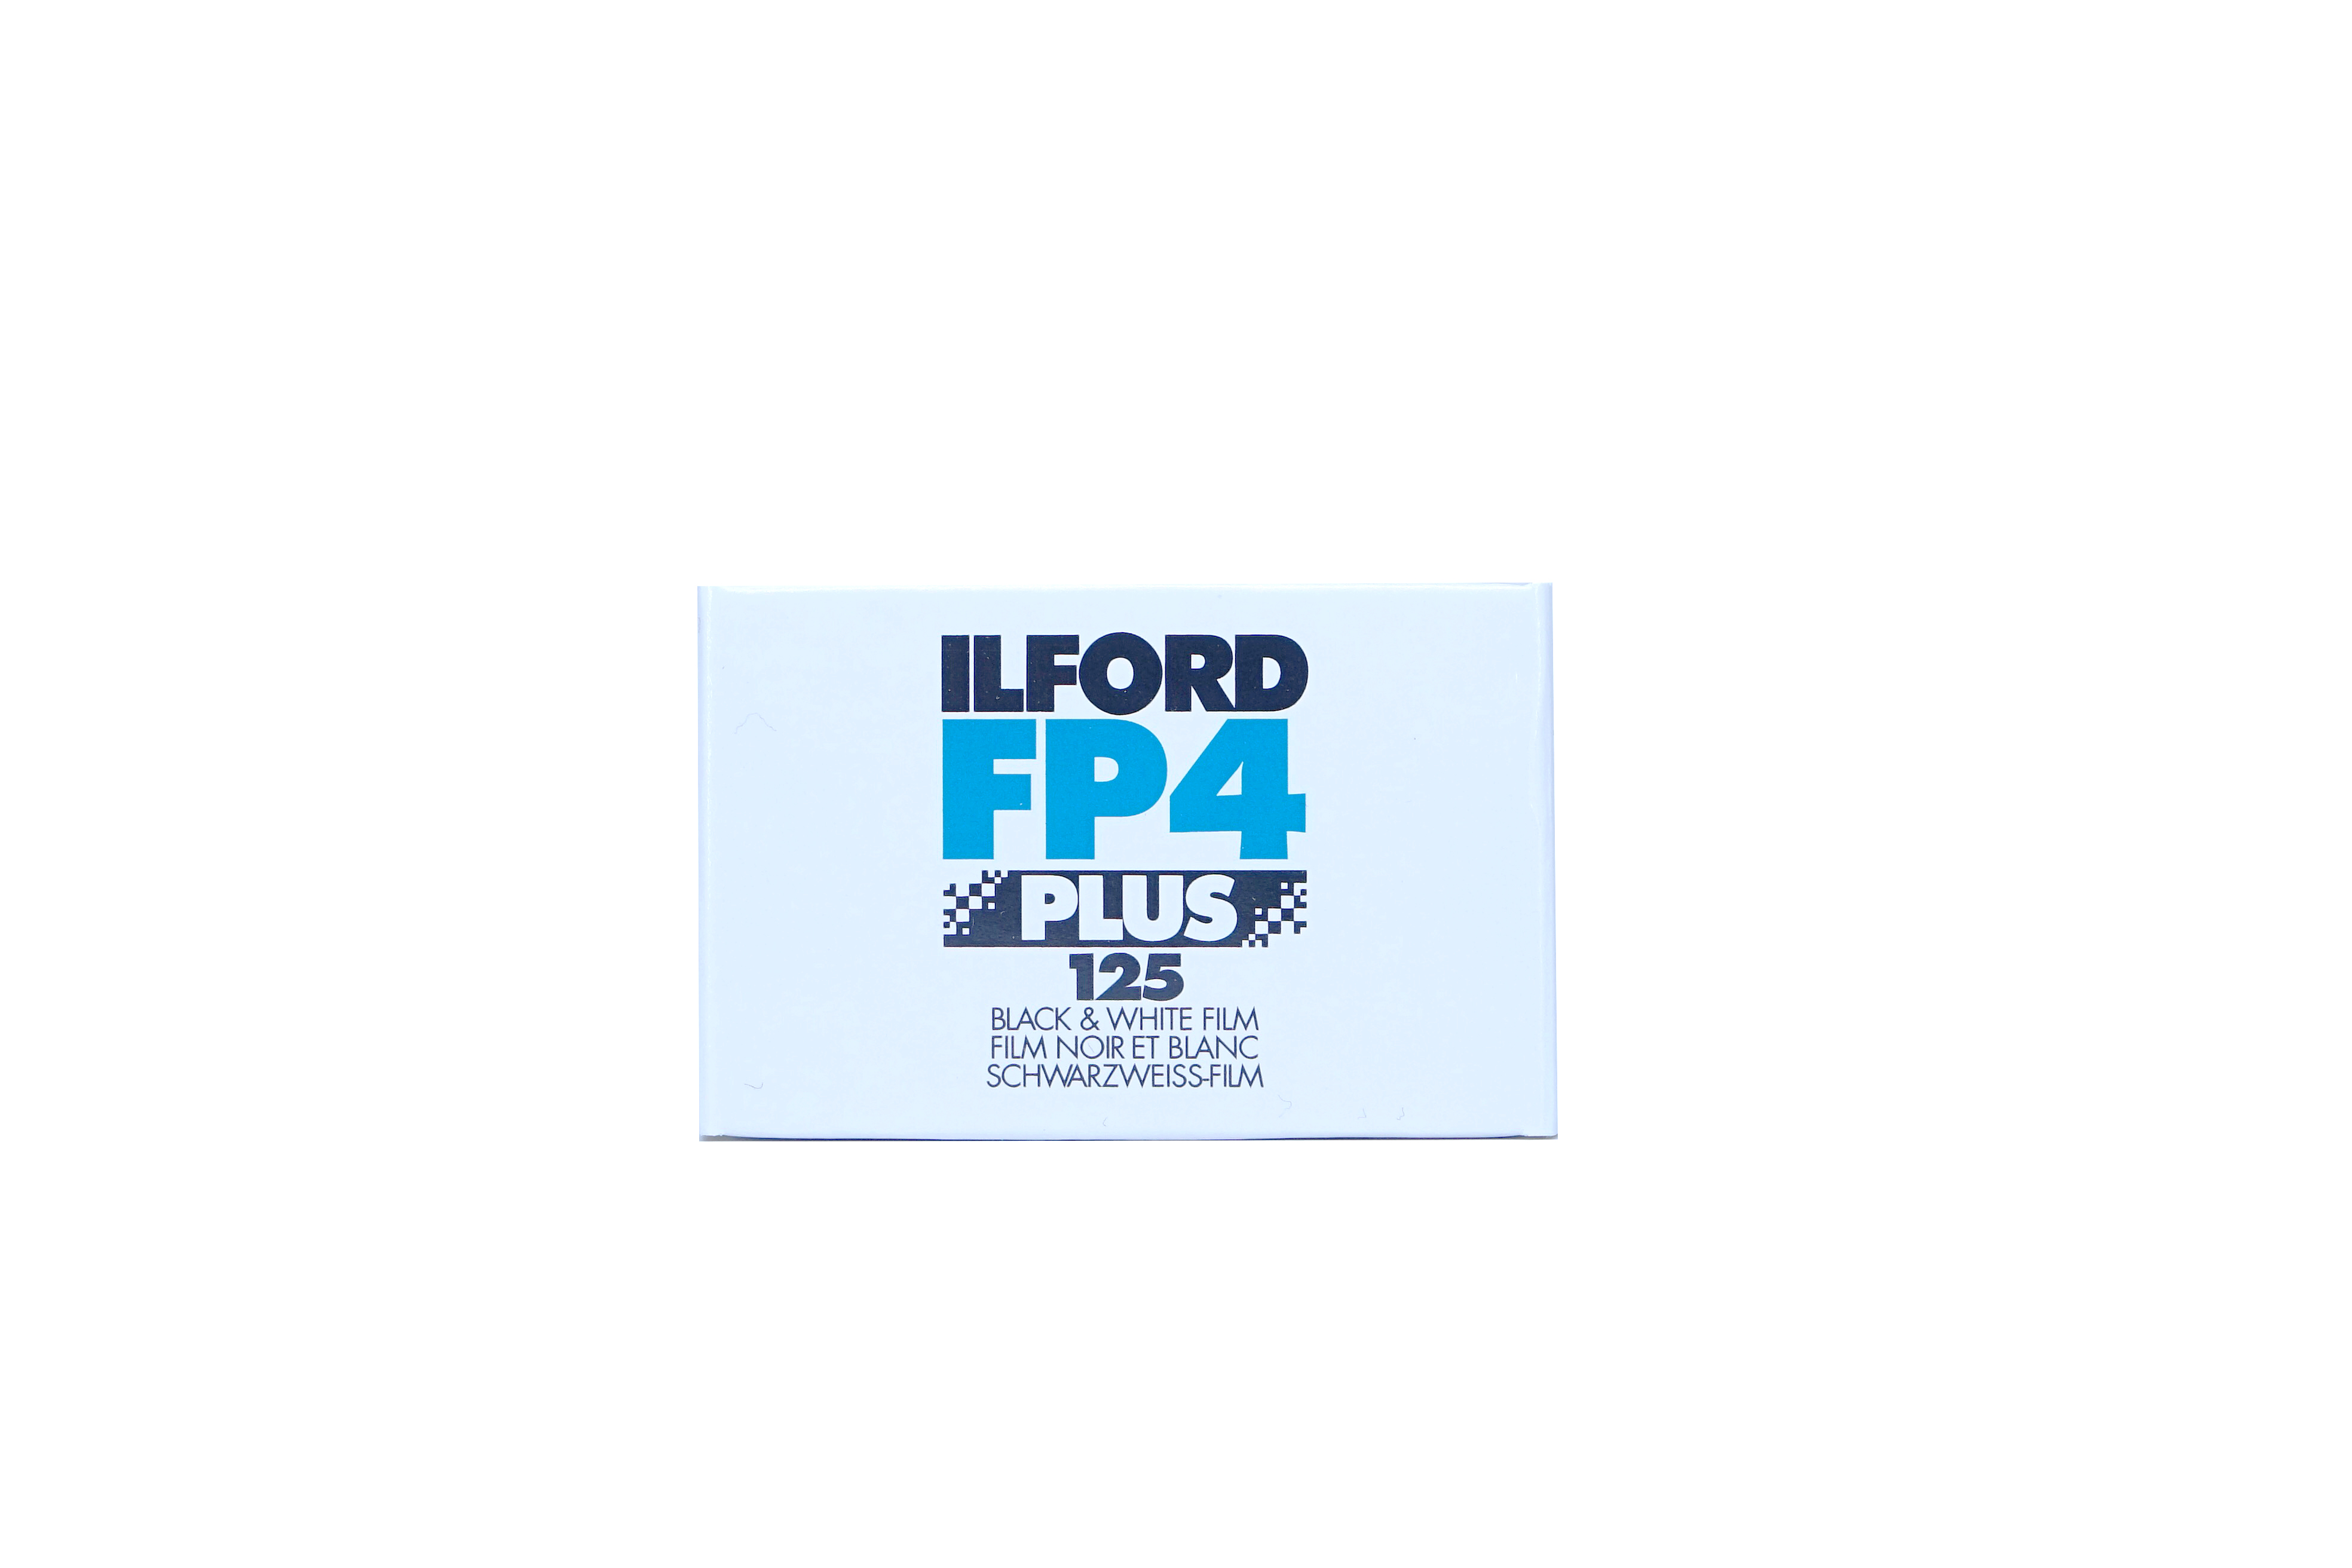 Ilford Iford FP4 Plus iso125 135 professional black and white film